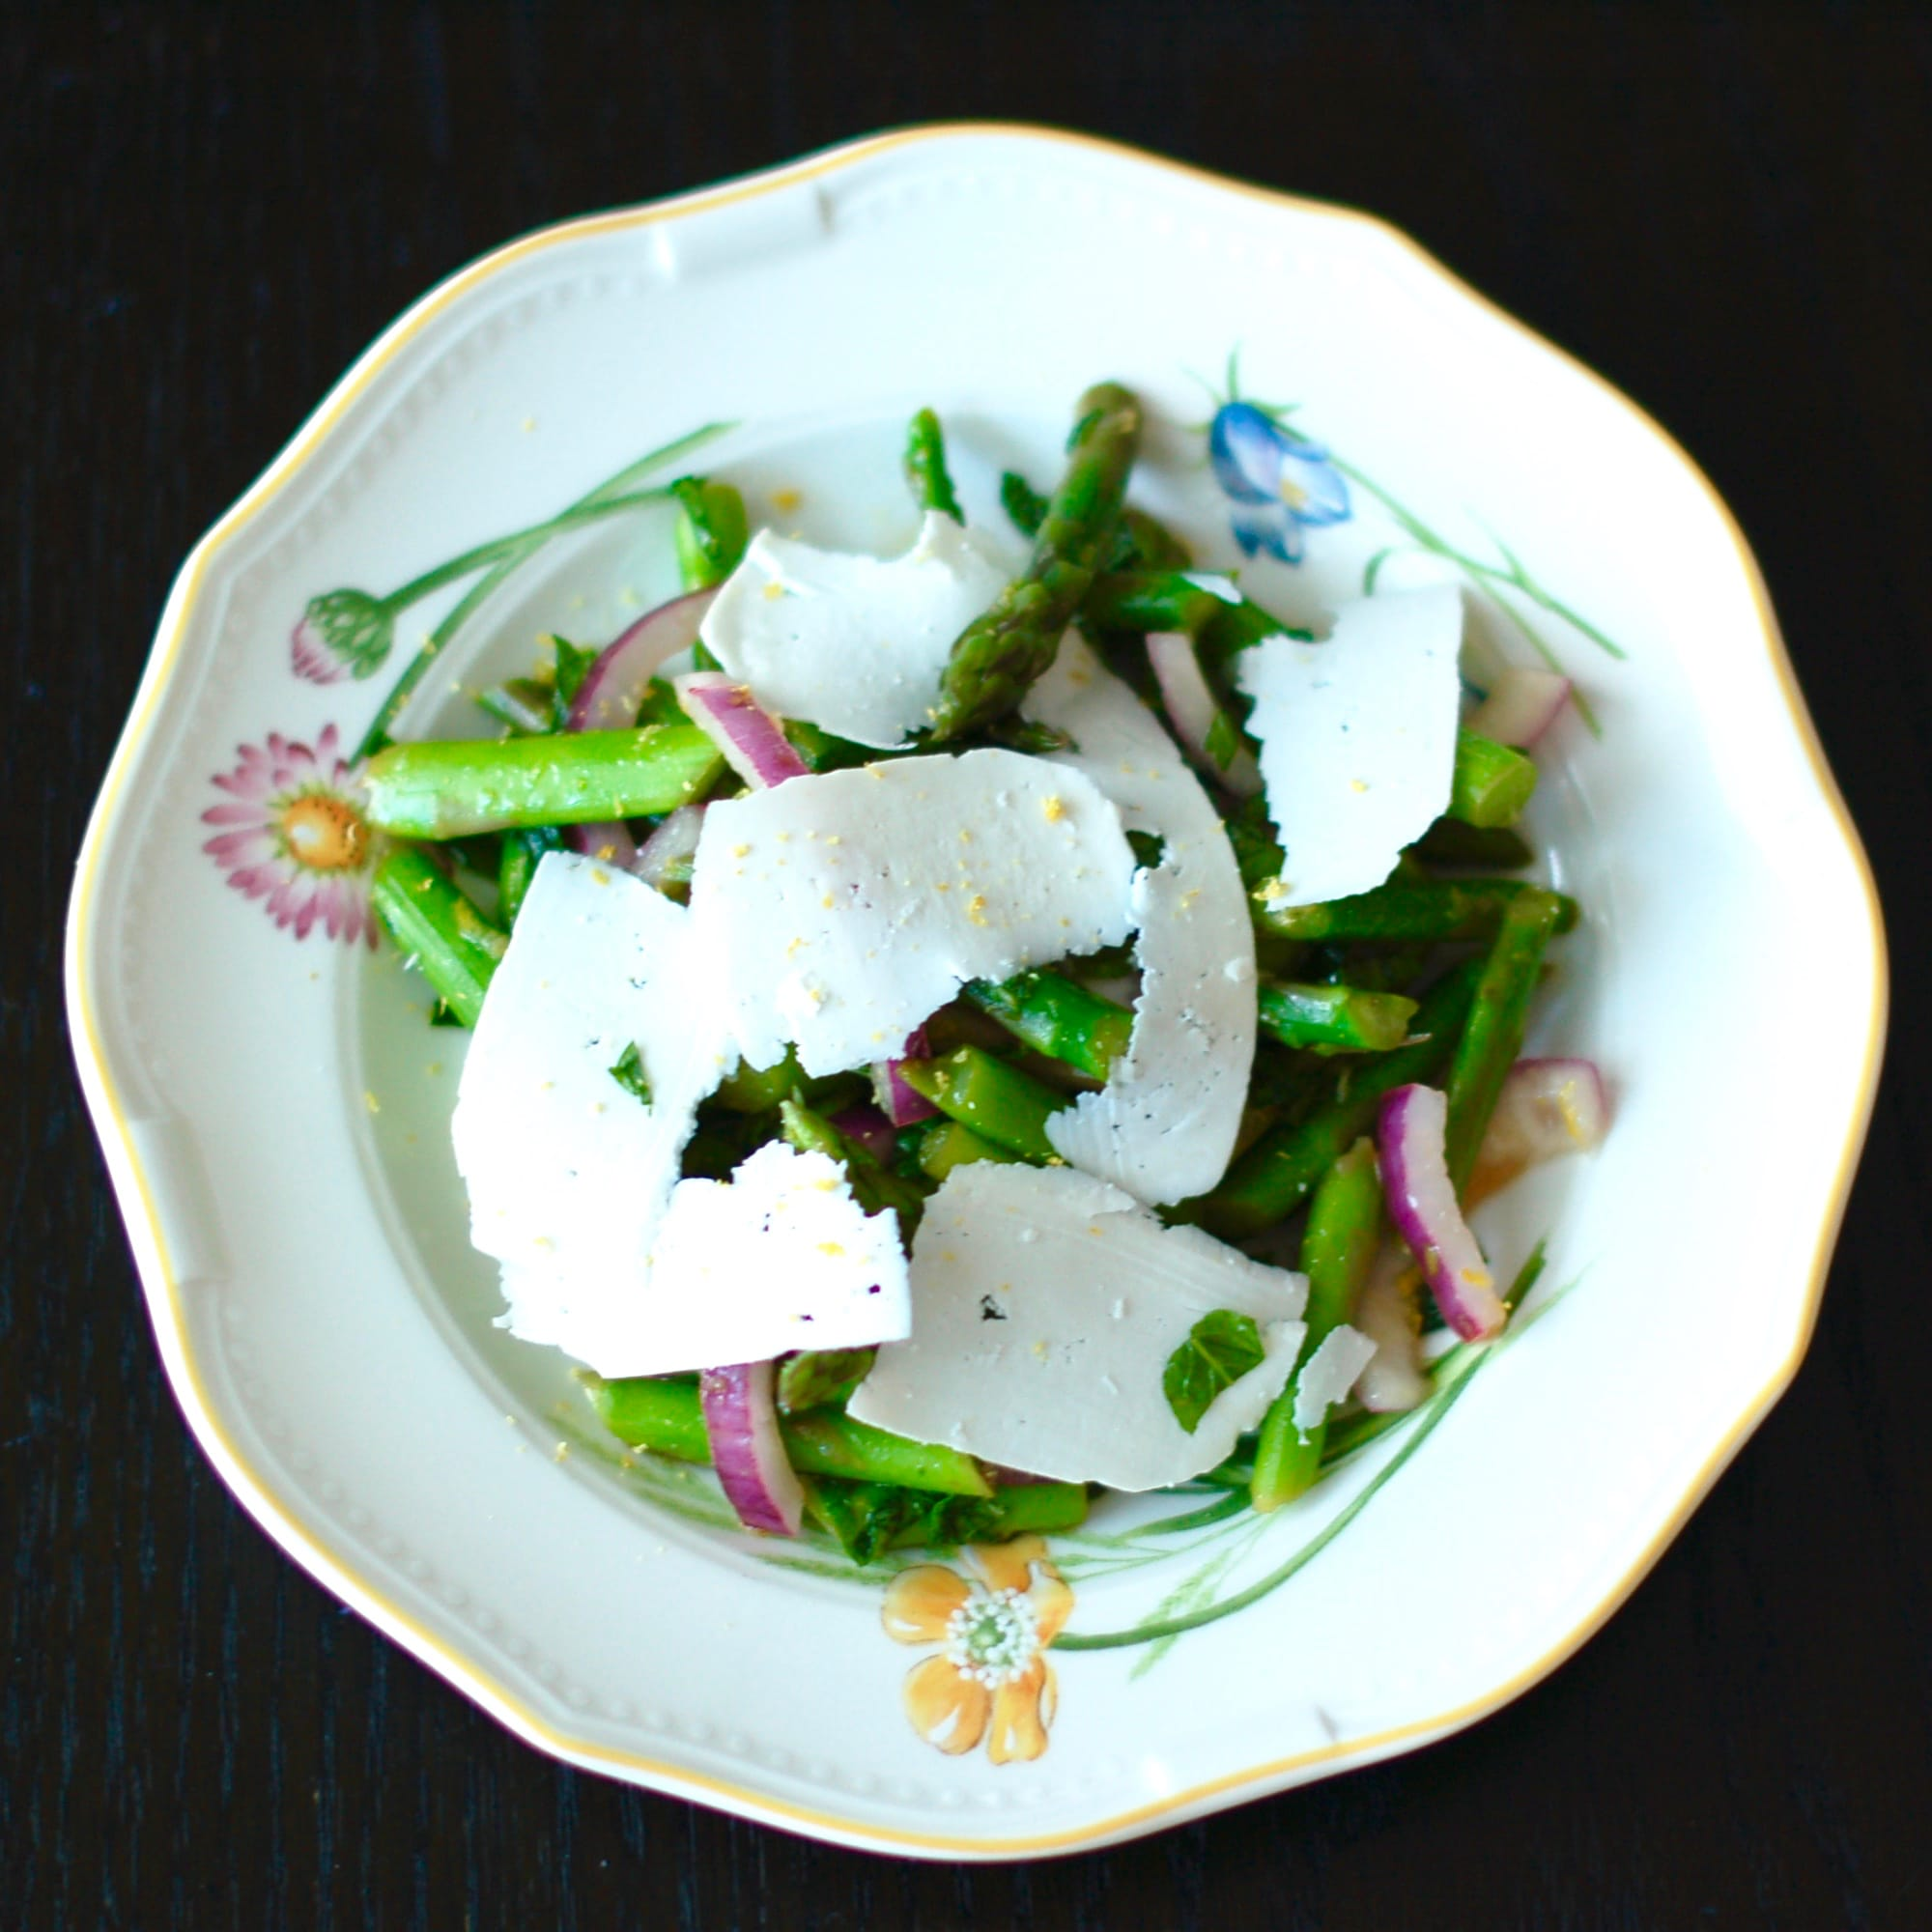 Earthy asparagus is tossed with crisp red onions, refreshing mint, zesty lemon, and salty ricotta salata cheese in this Asparagus Mint Salad that will get you in the spirit of spring and wake up your taste buds. Get the recipe at JessicaLevinson.com. #vegetarian #glutenfree #asparagus #springrecipes #salad